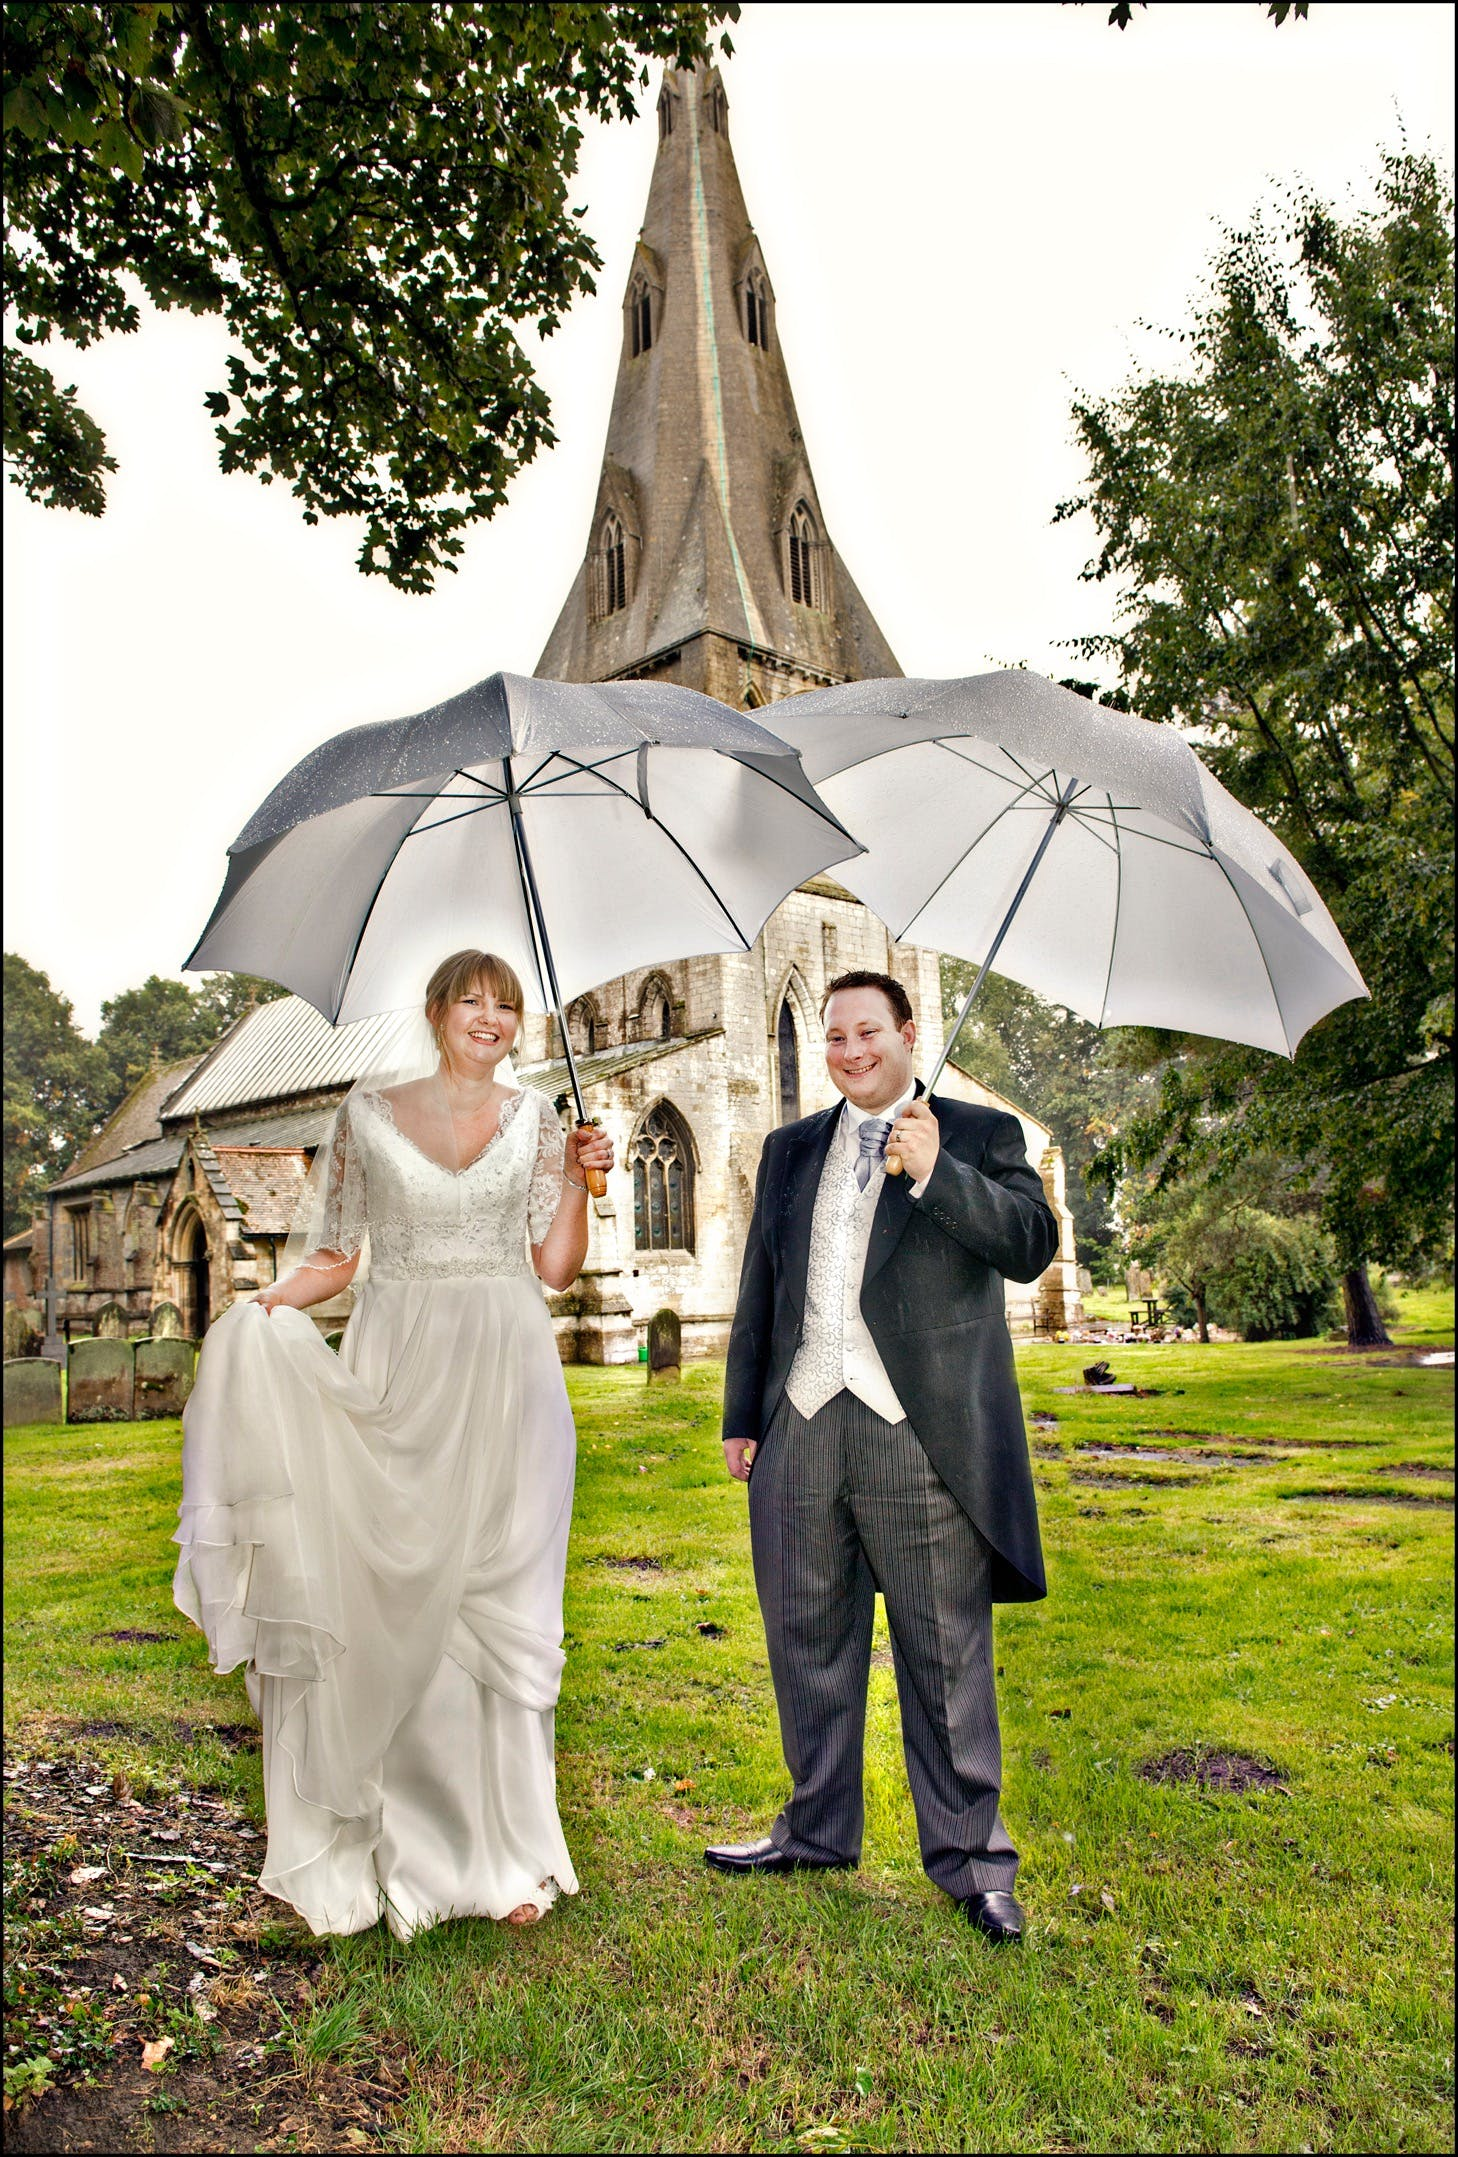 We're singing in the rain! Lovely Annabel is wearing 'Maud' by Charlotte Balbier.